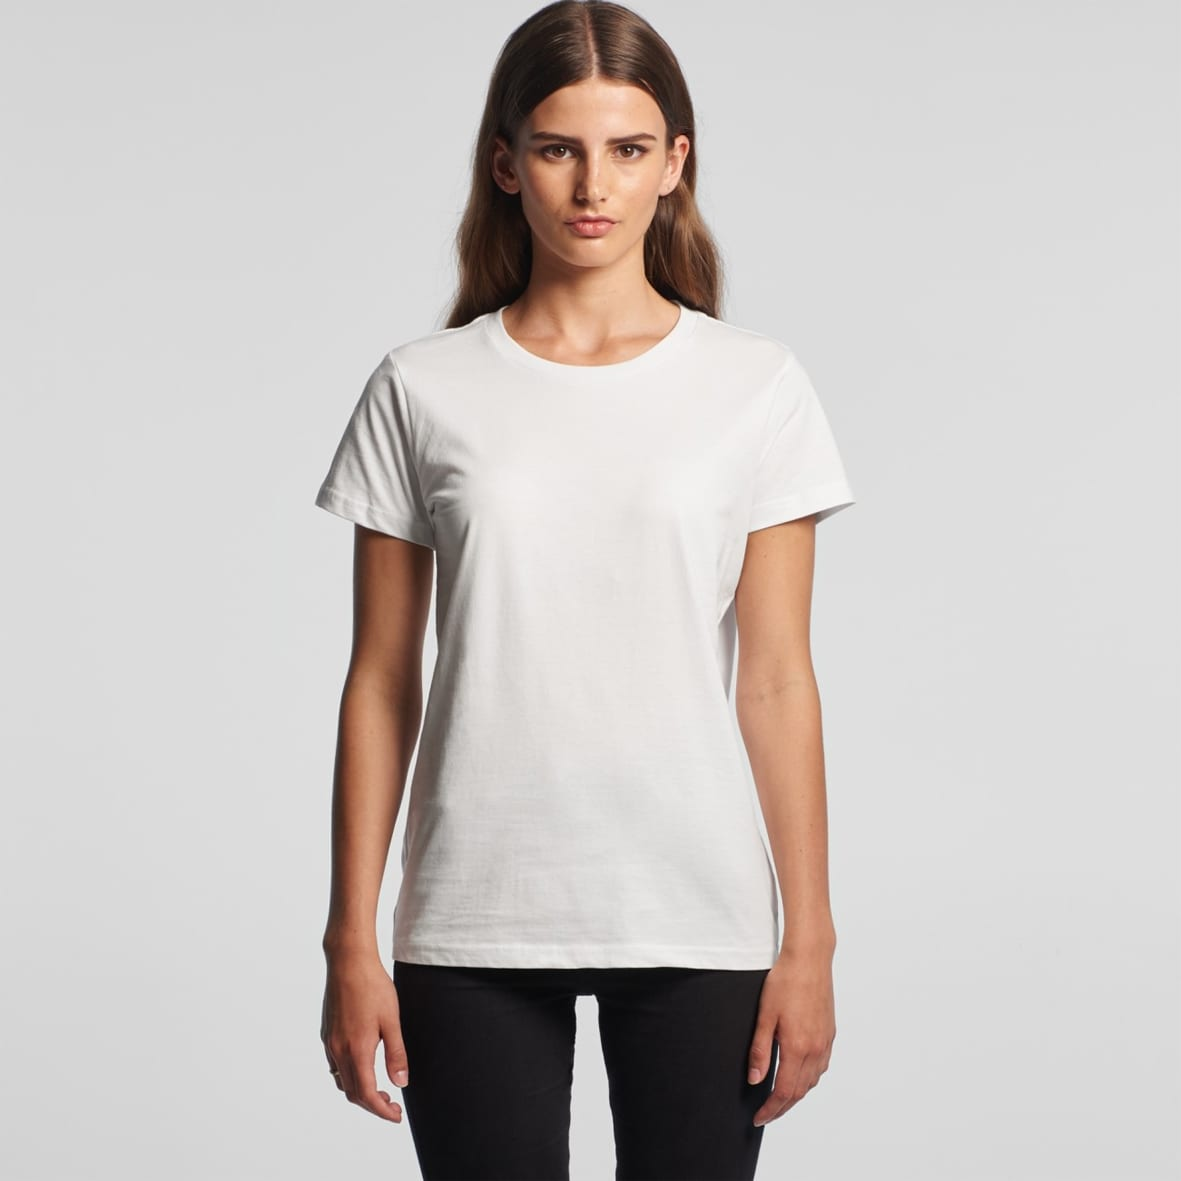 AS 4001 Women's maple tee